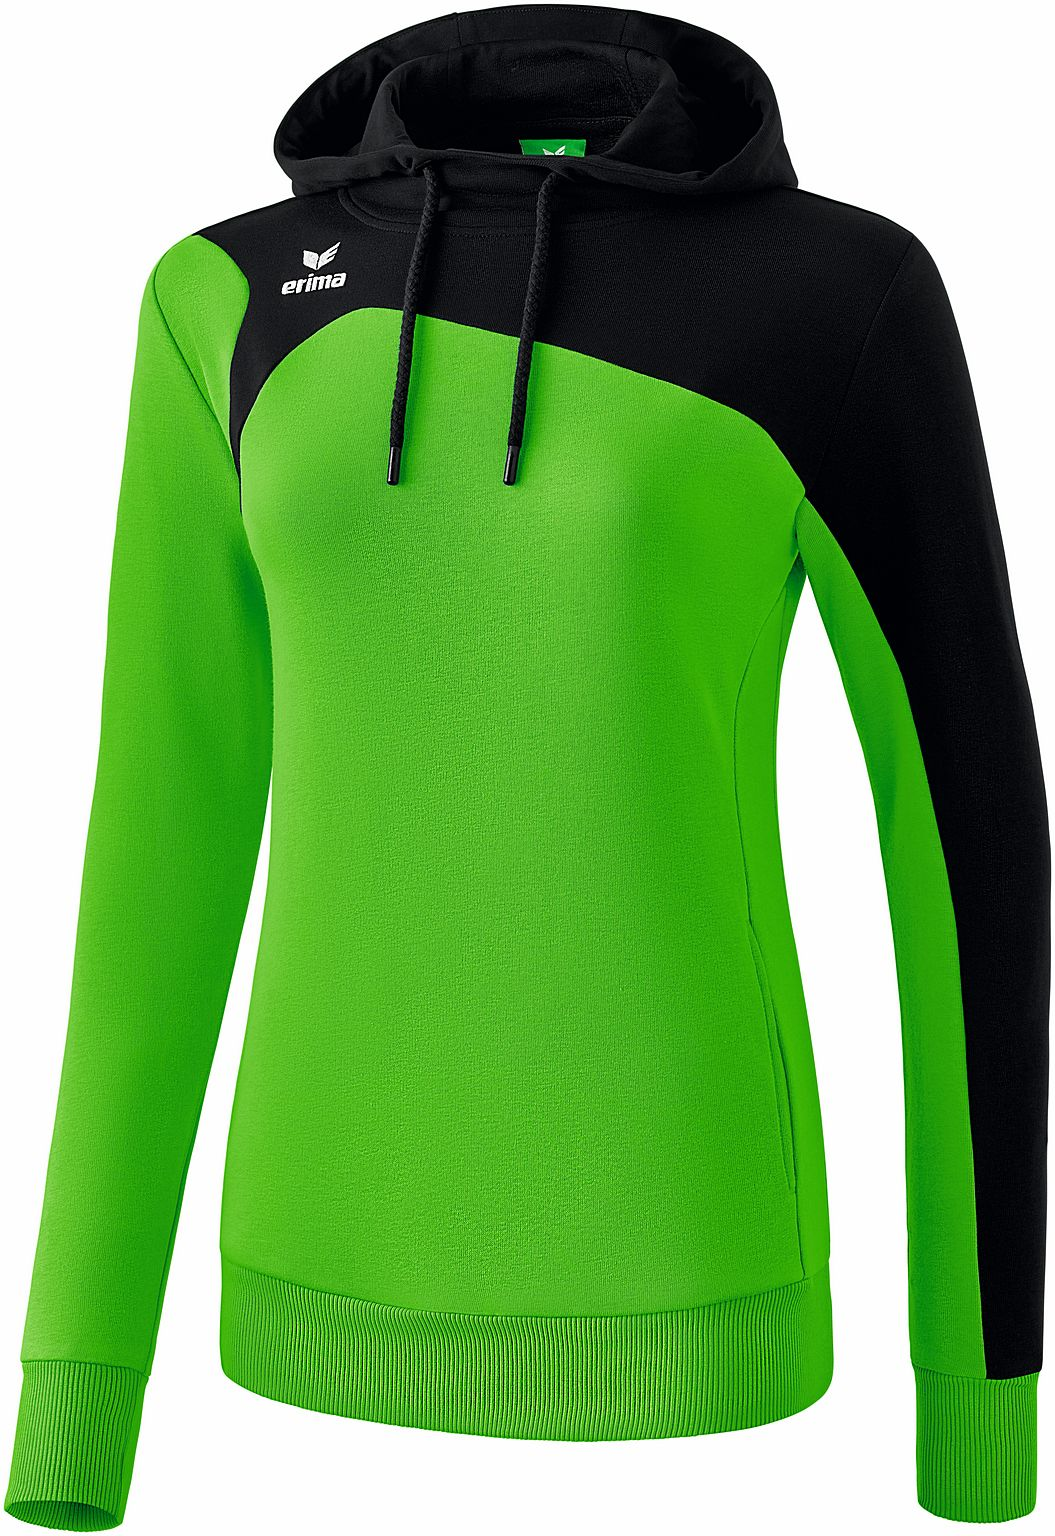 Club 1900 2.0 sweatshirt met capuchon green/zwart